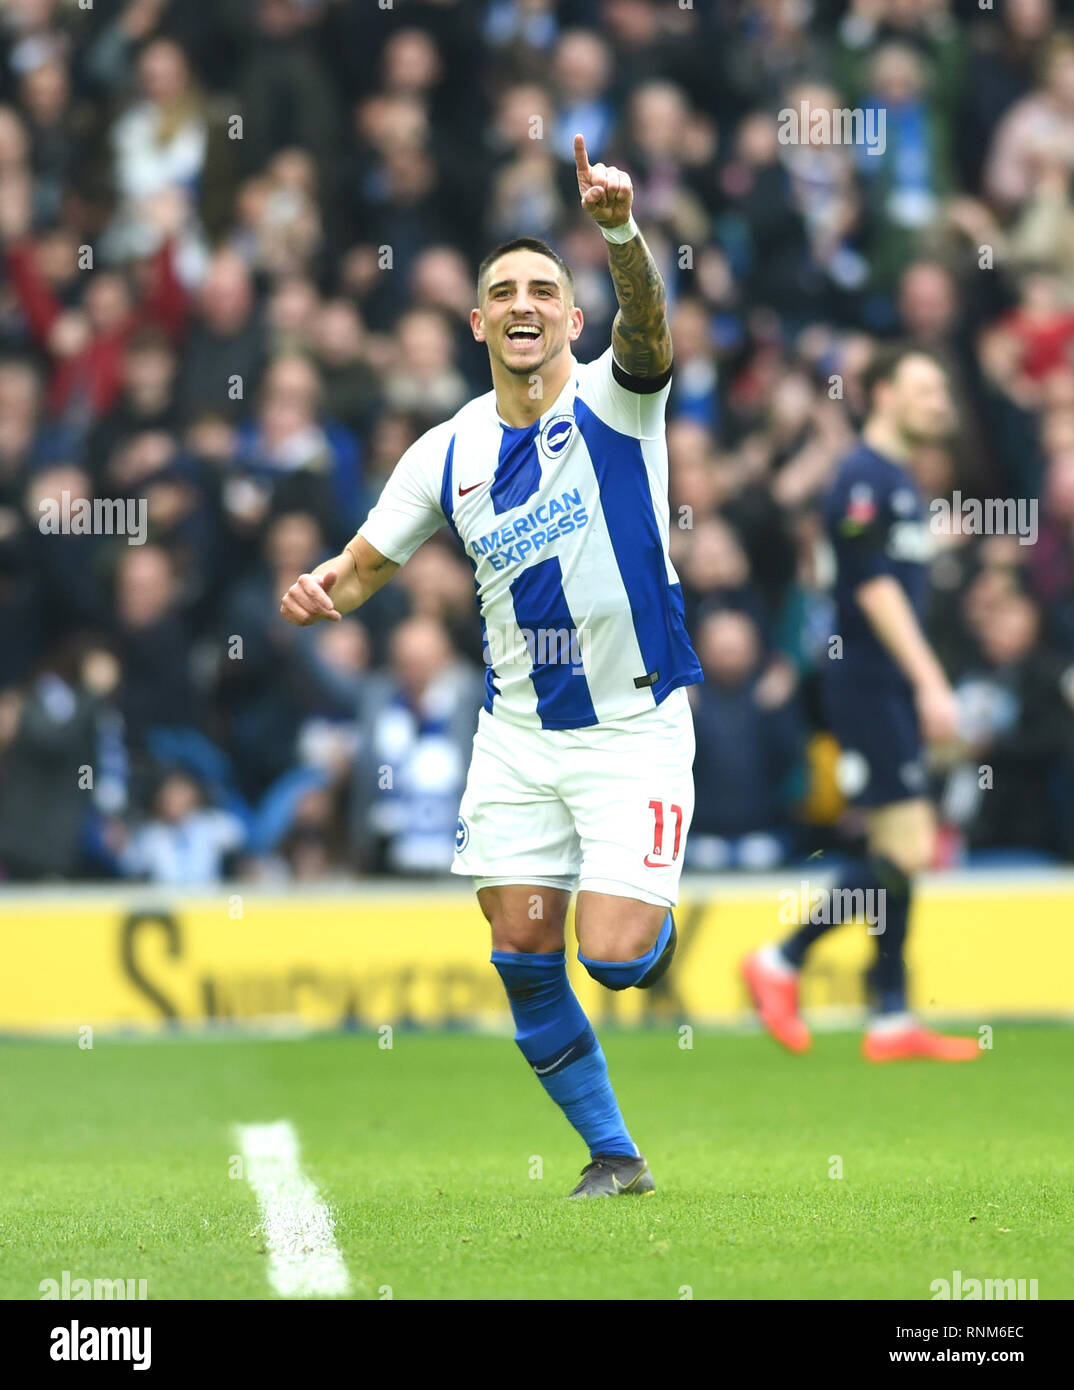 Anthony Knockaert of Brighton celebrates scoring the first goal during the FA Cup 5th round match between Brighton & Hove Albion and Derby County at the American Express Community Stadium . 16 February 2019 Editorial use only. No merchandising. For Football images FA and Premier League restrictions apply inc. no internet/mobile usage without FAPL license - for details contact Football Dataco - Stock Image